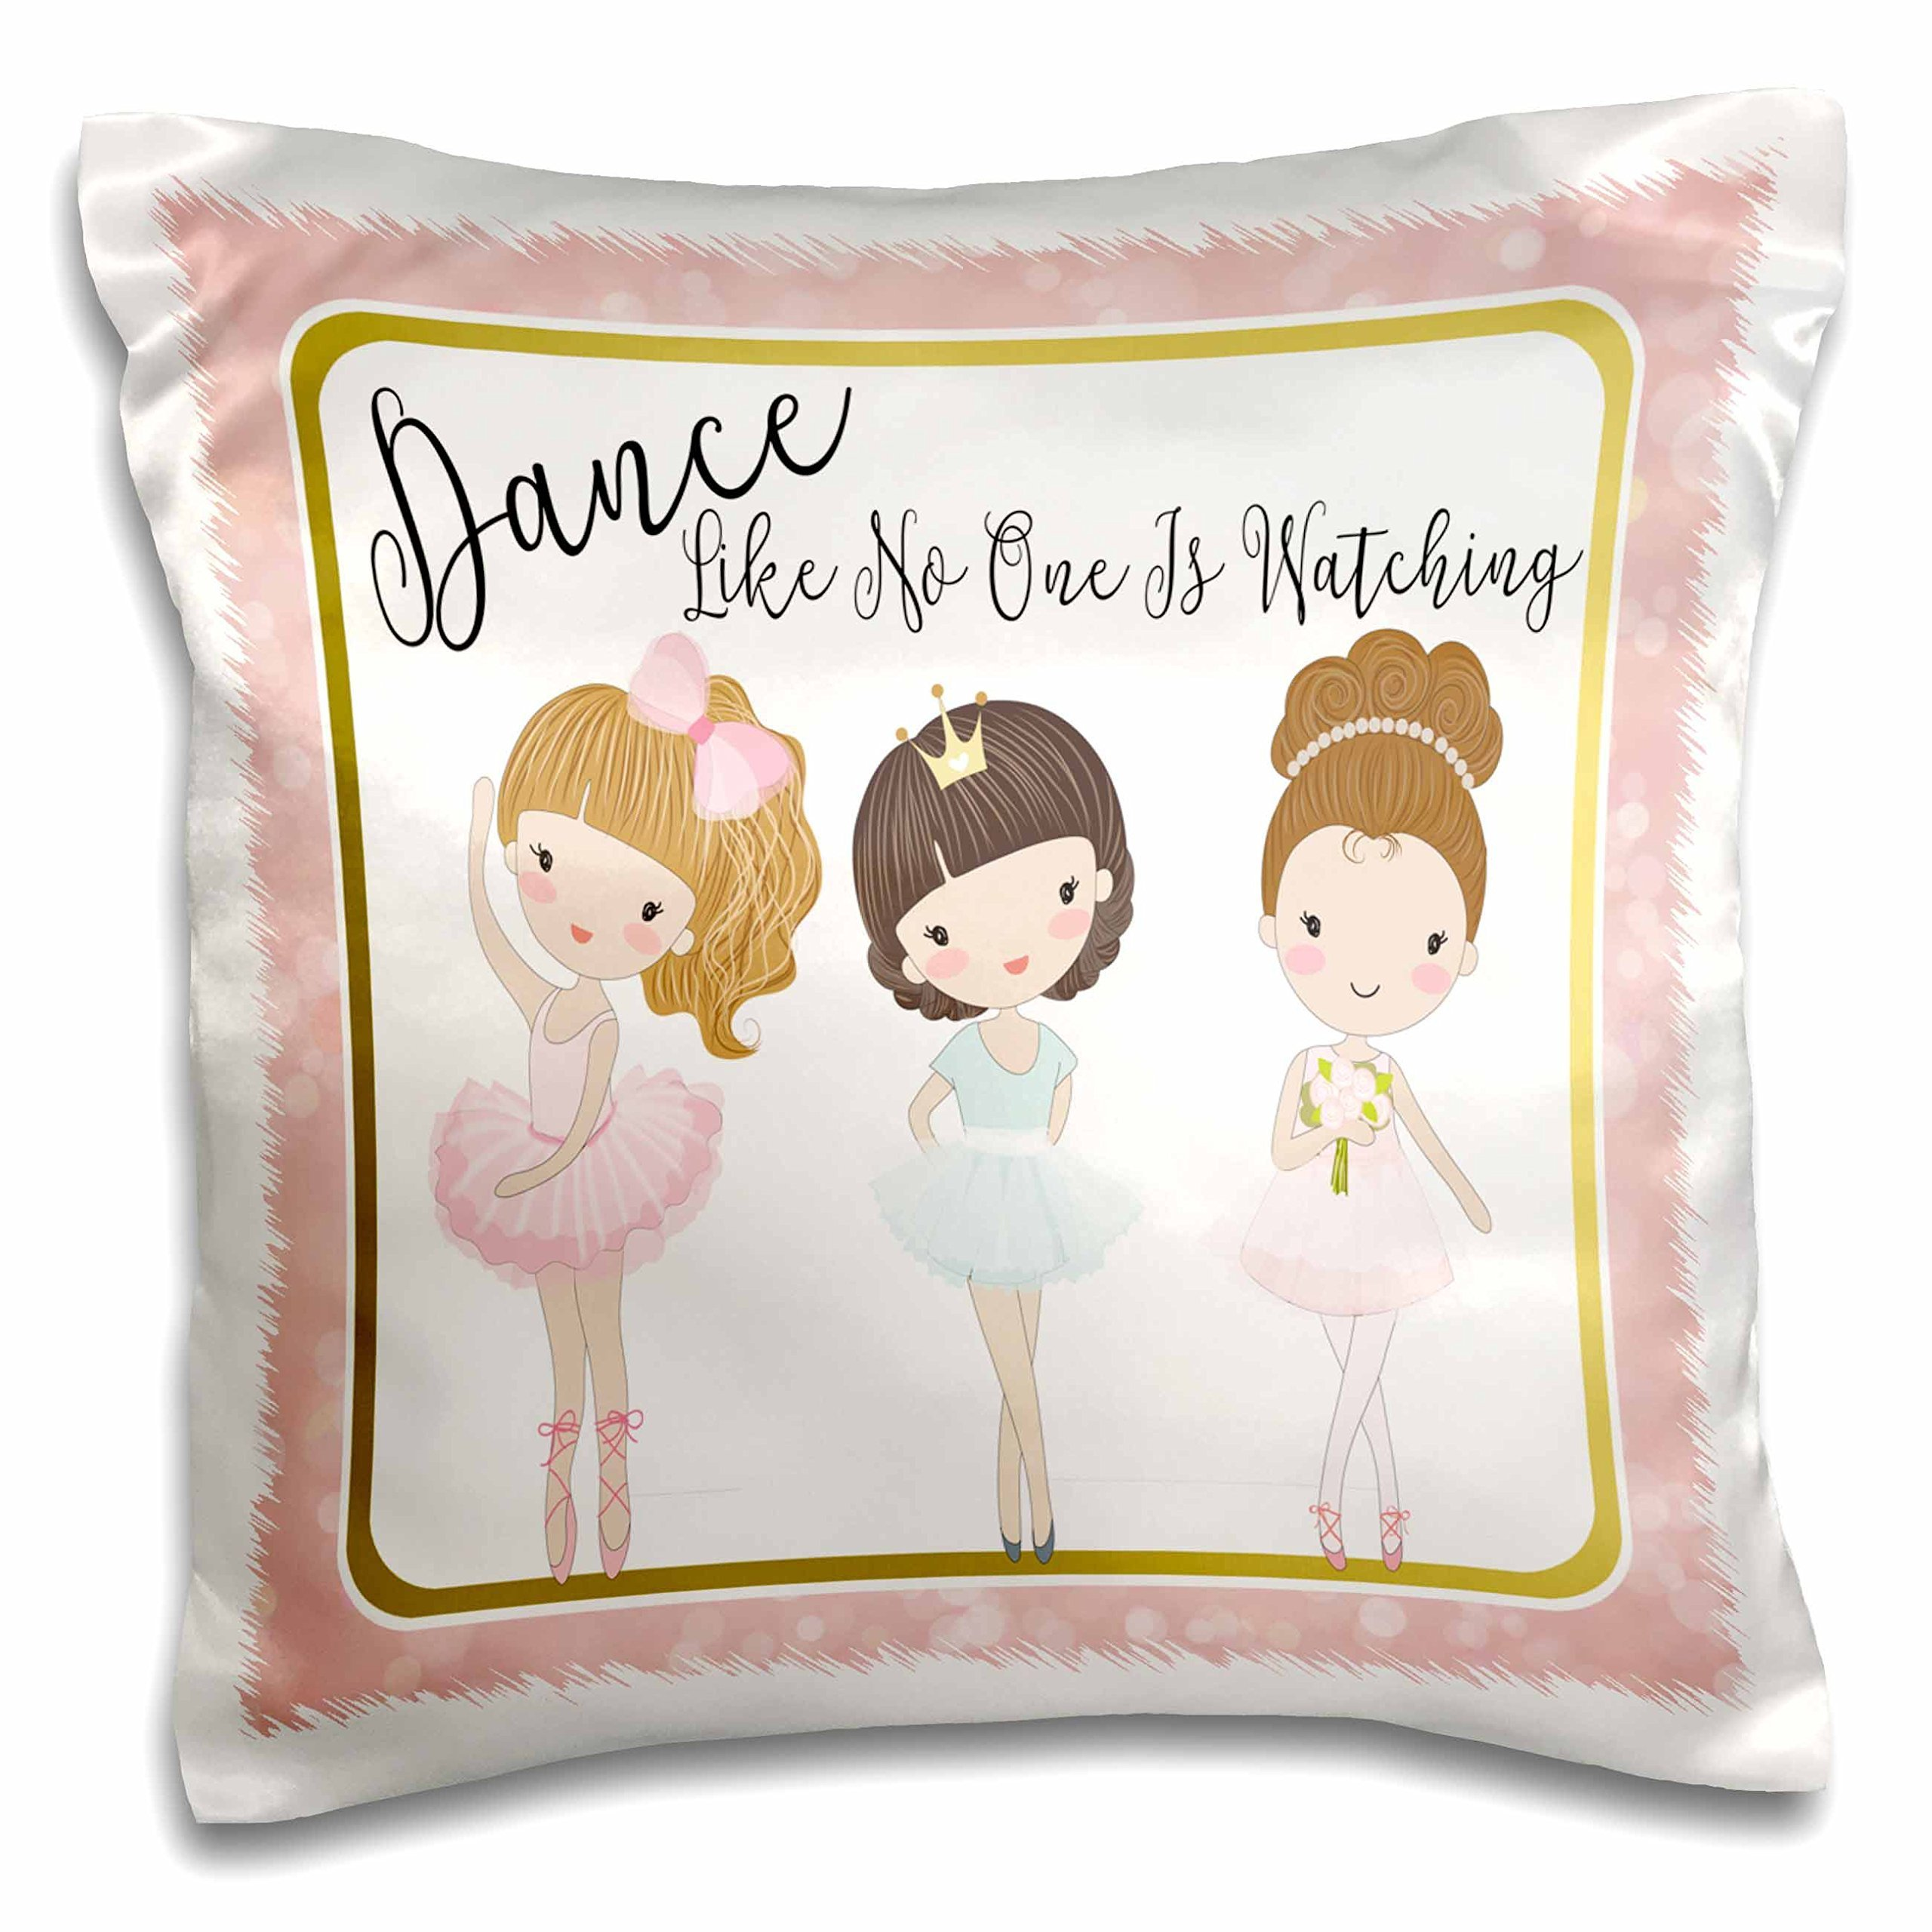 3D Rose Dance Like No One is Watching with Cute Ballerina Girls Pillow Cases, 16'' x 16''